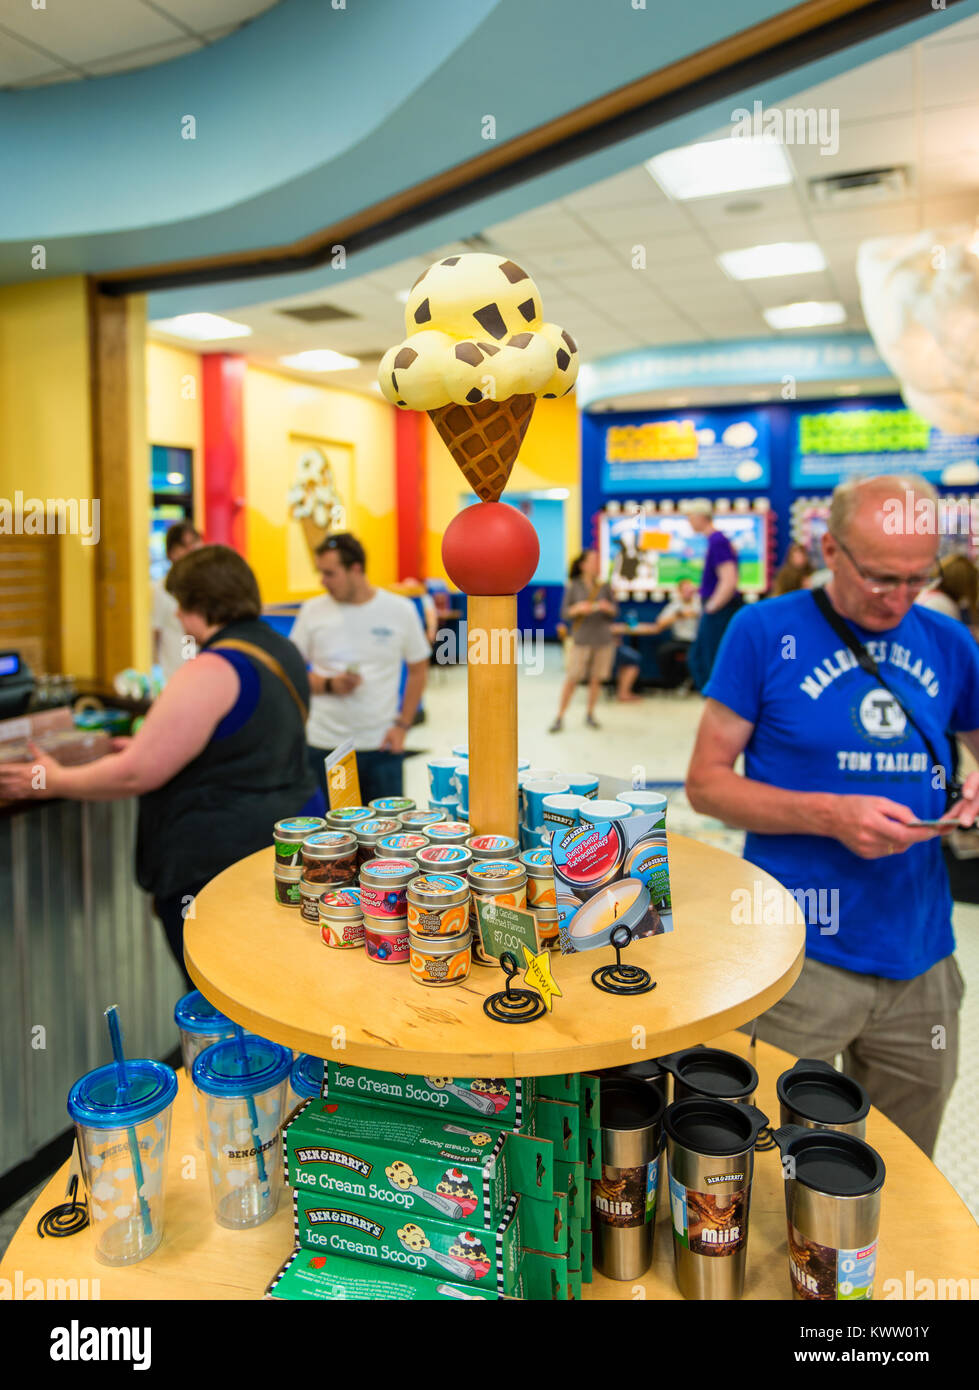 Gift Shop at Ben and Jerry's ice cream manufacturing headquarters in Waterbury, Vermont, USA. Ben & Jerry's - Stock Image